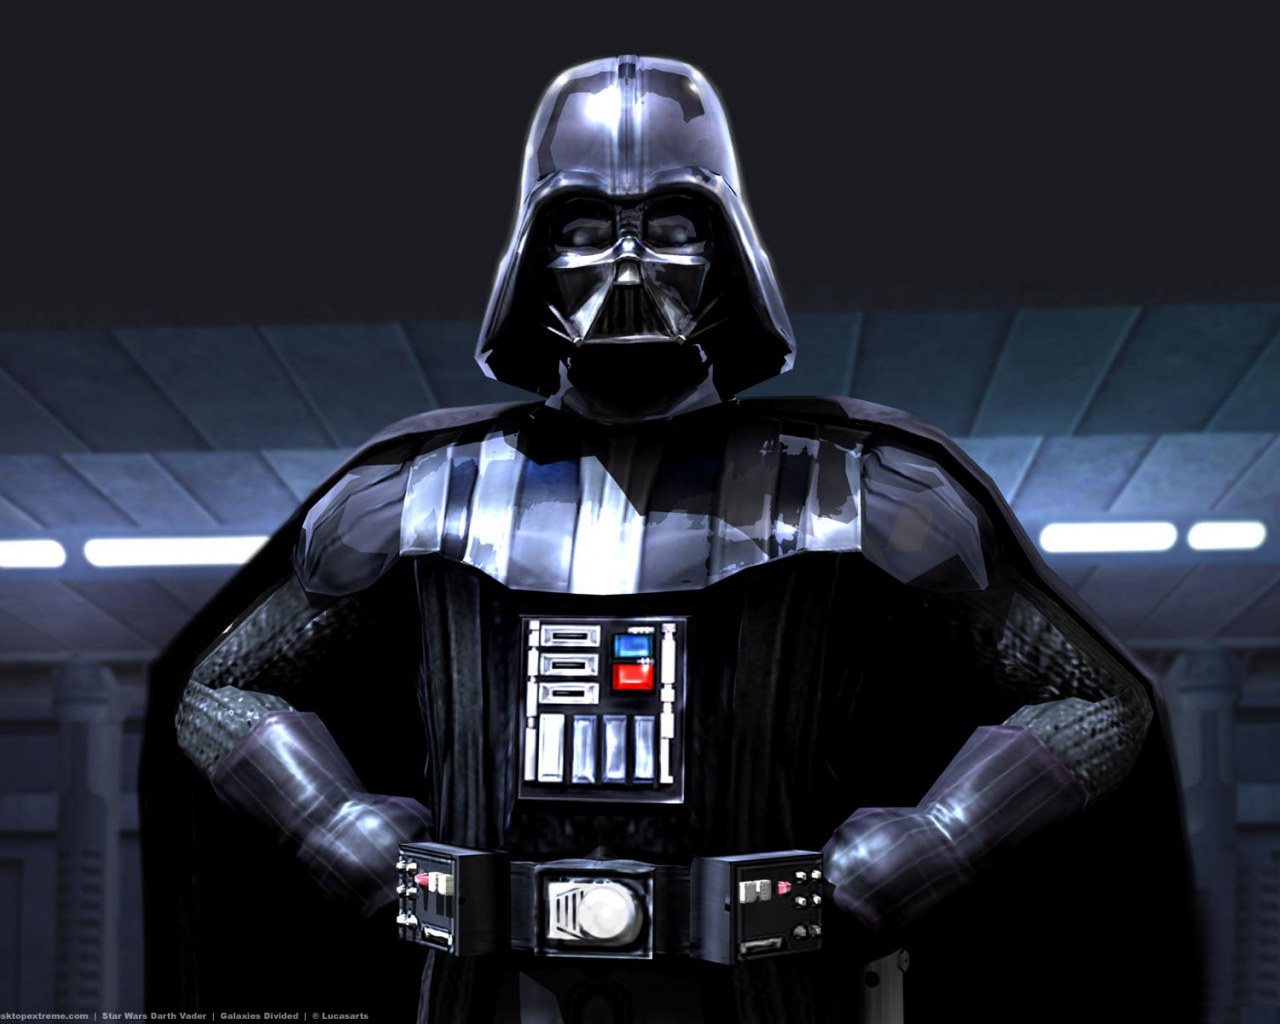 Free download Darth Vader Minecraft Skin [8x8] for your